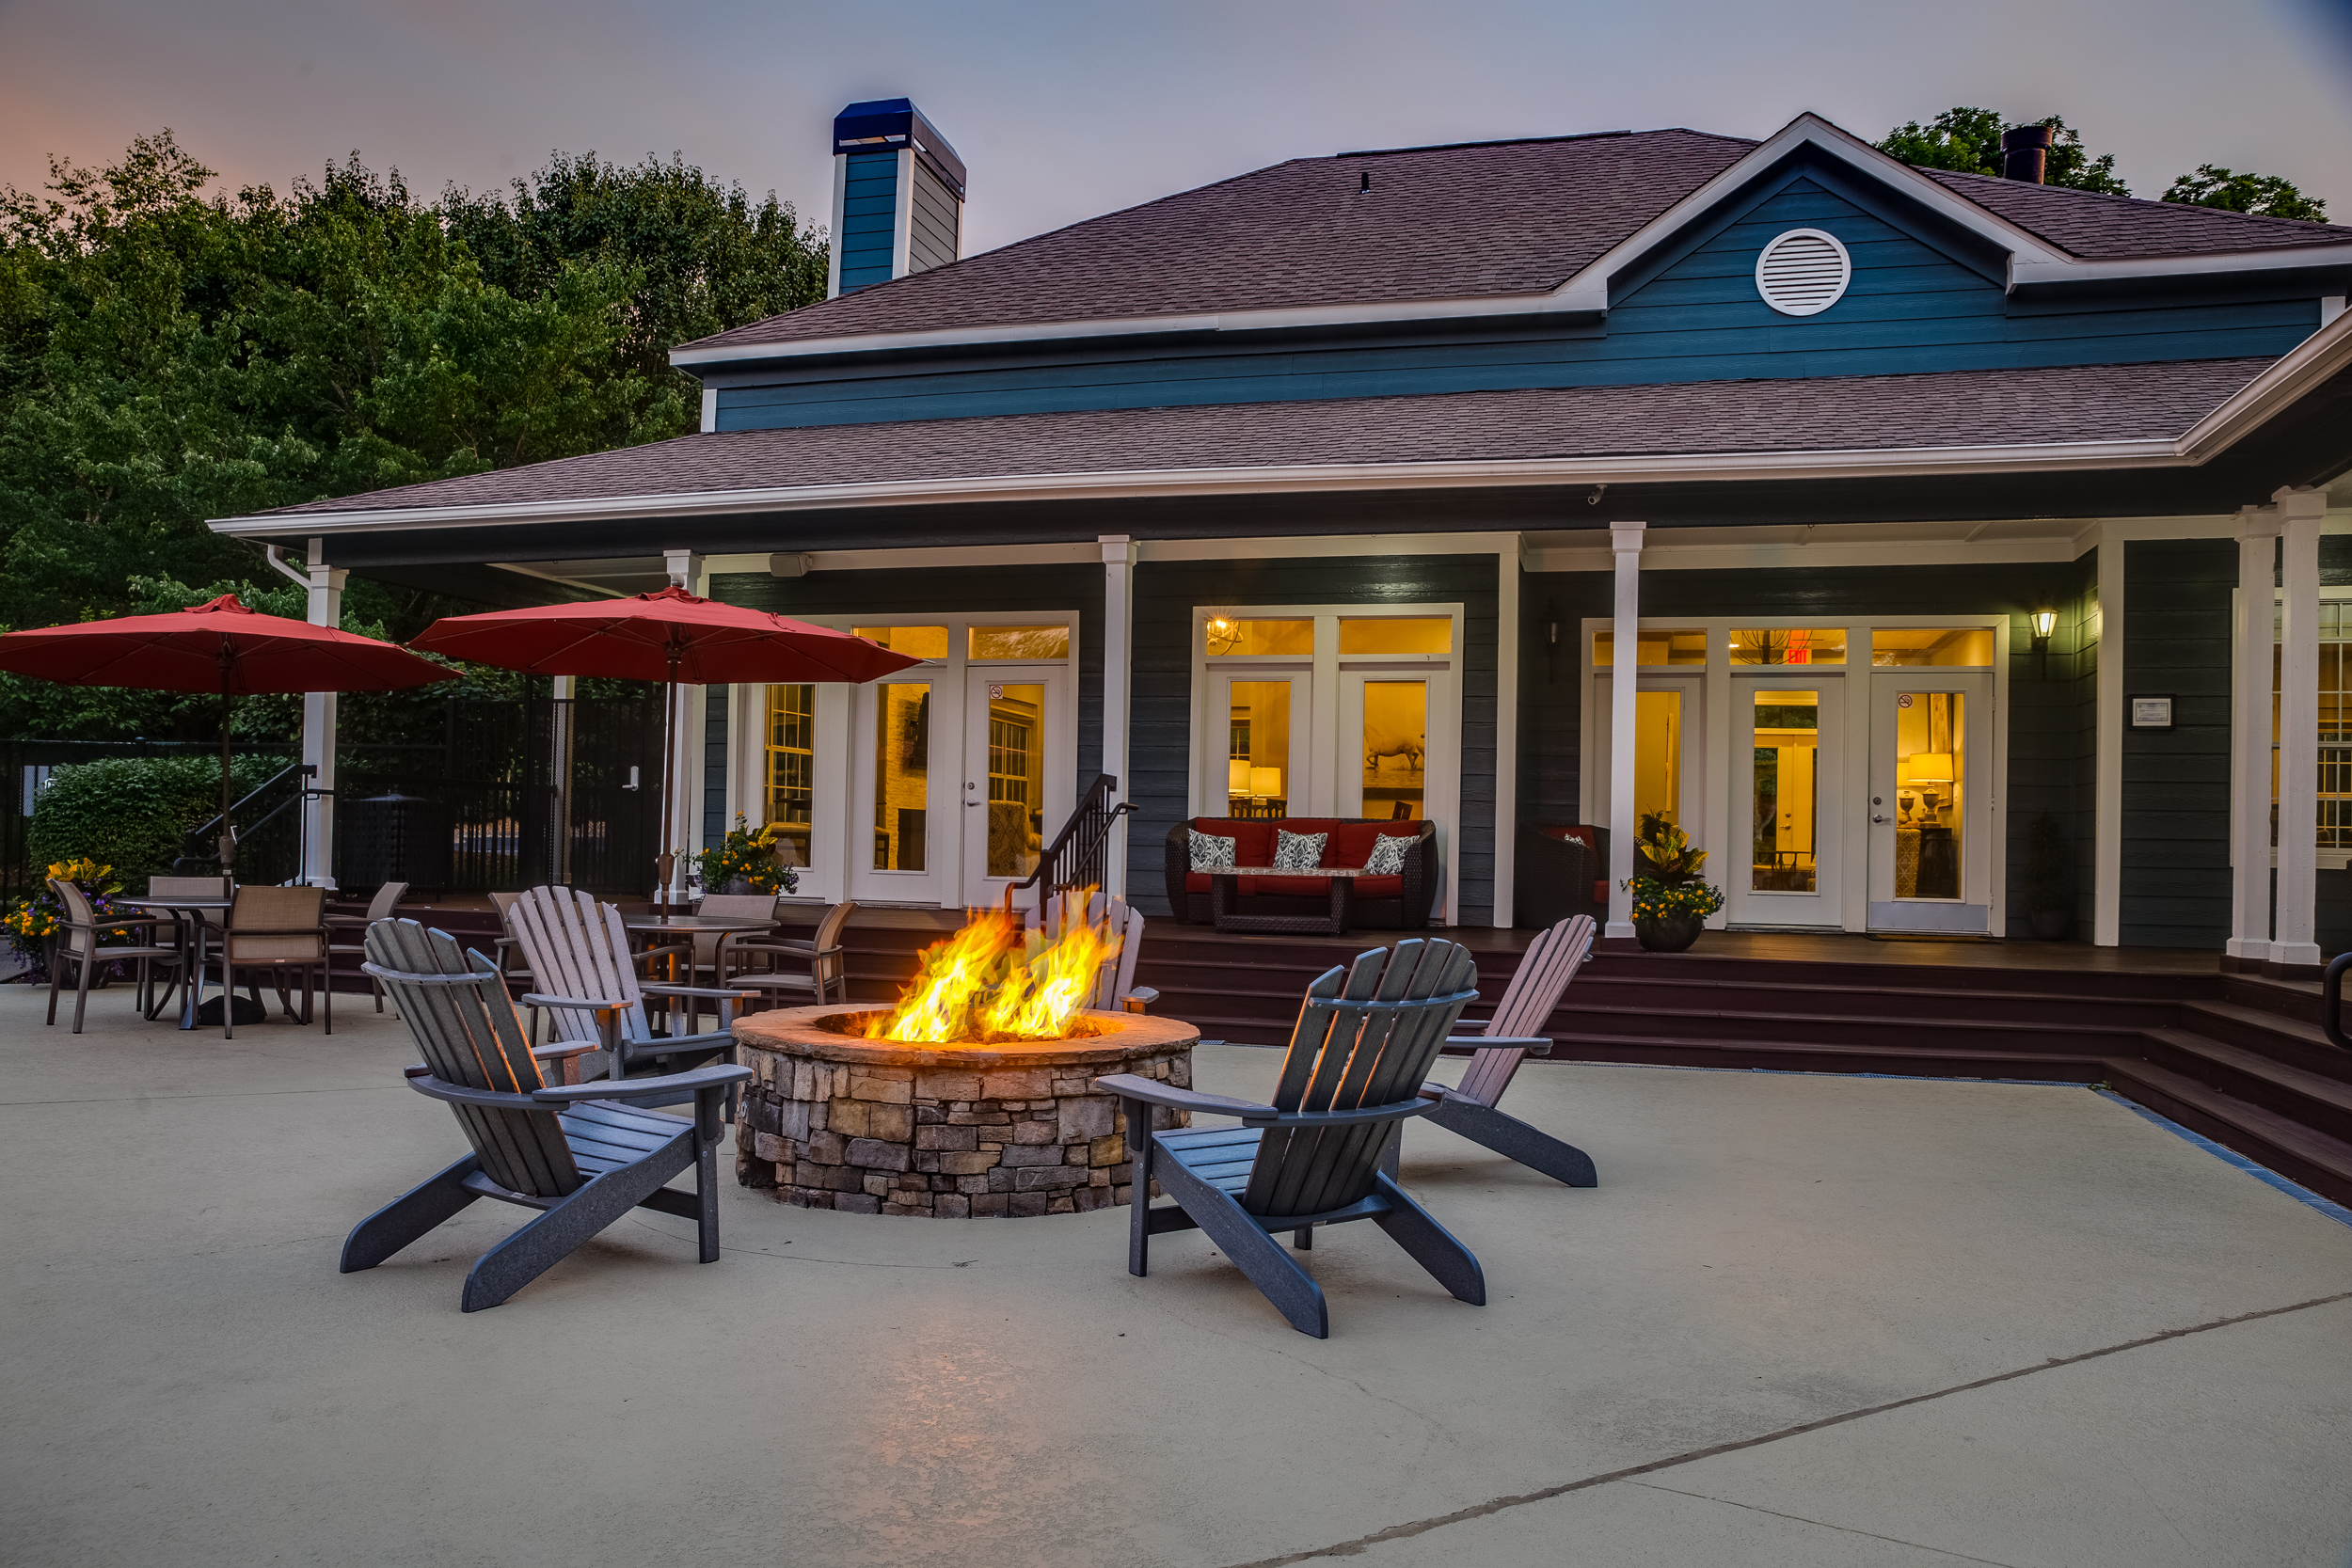 CarringtonHills_FirePit_Architecture_Photography.jpg